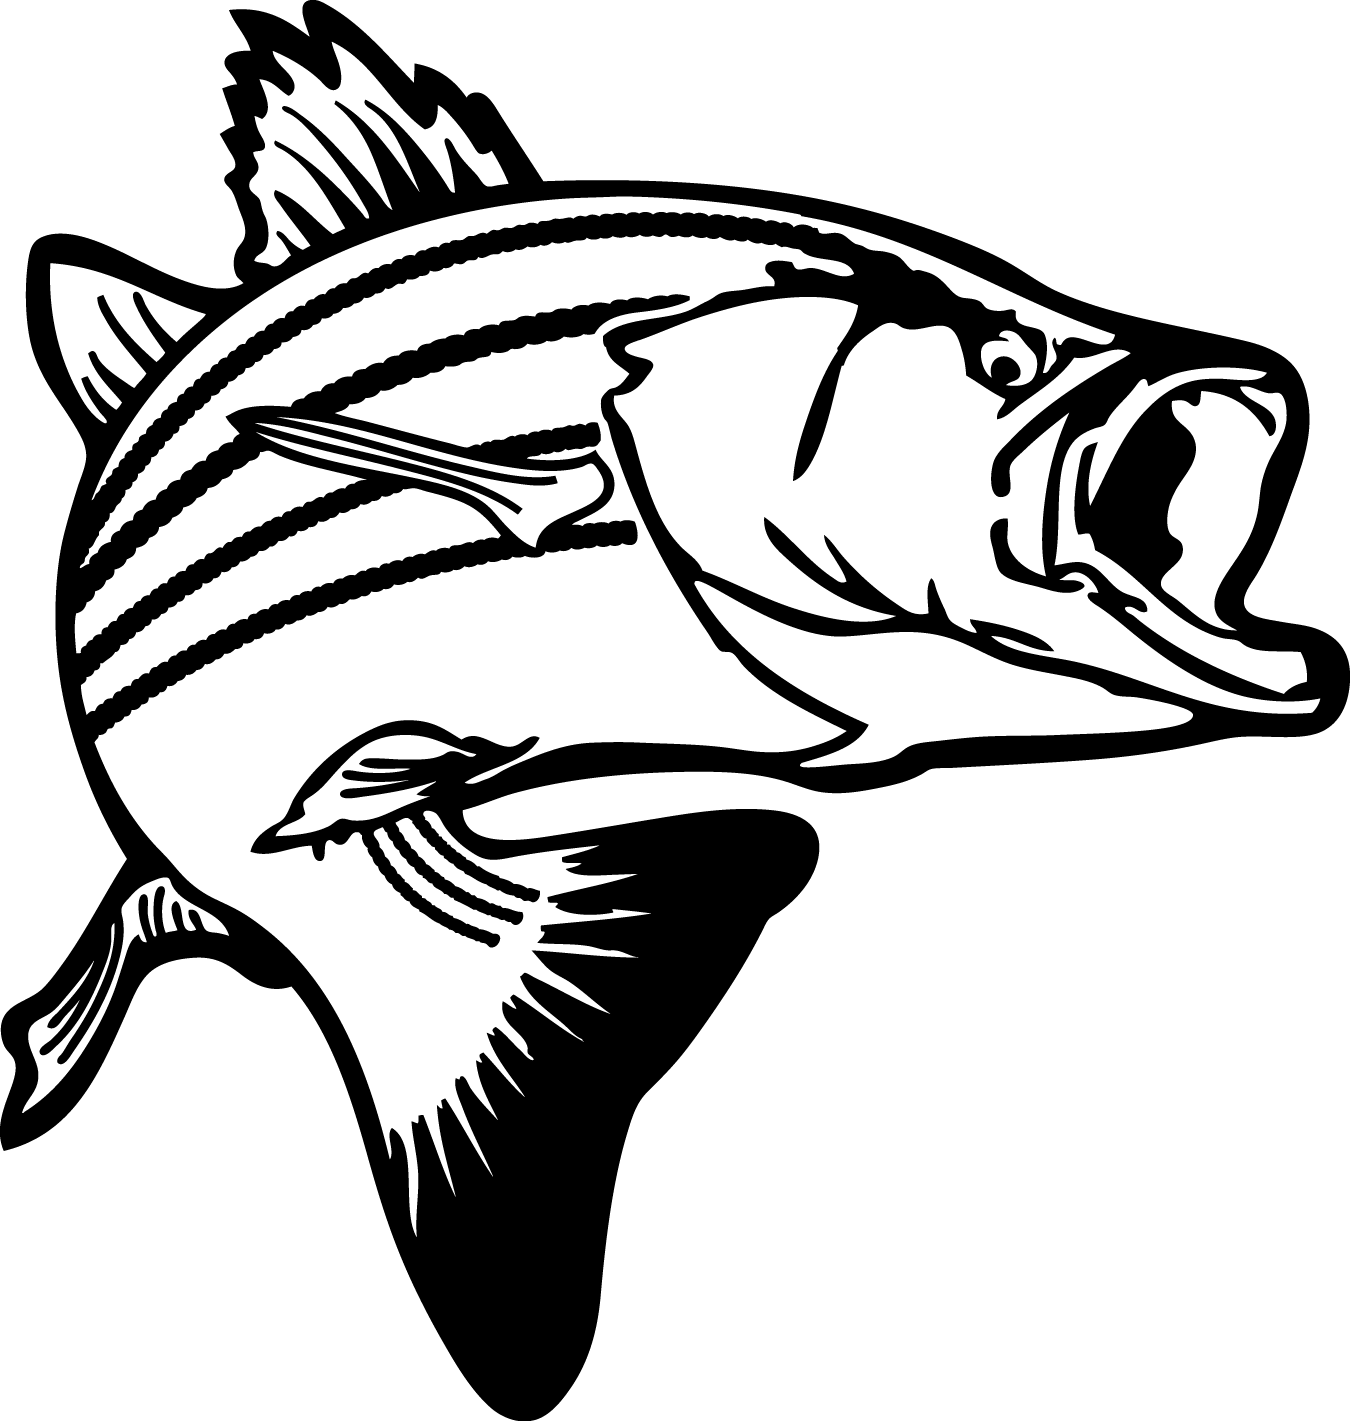 Pickerel drawing at getdrawings. Fish clipart pollution